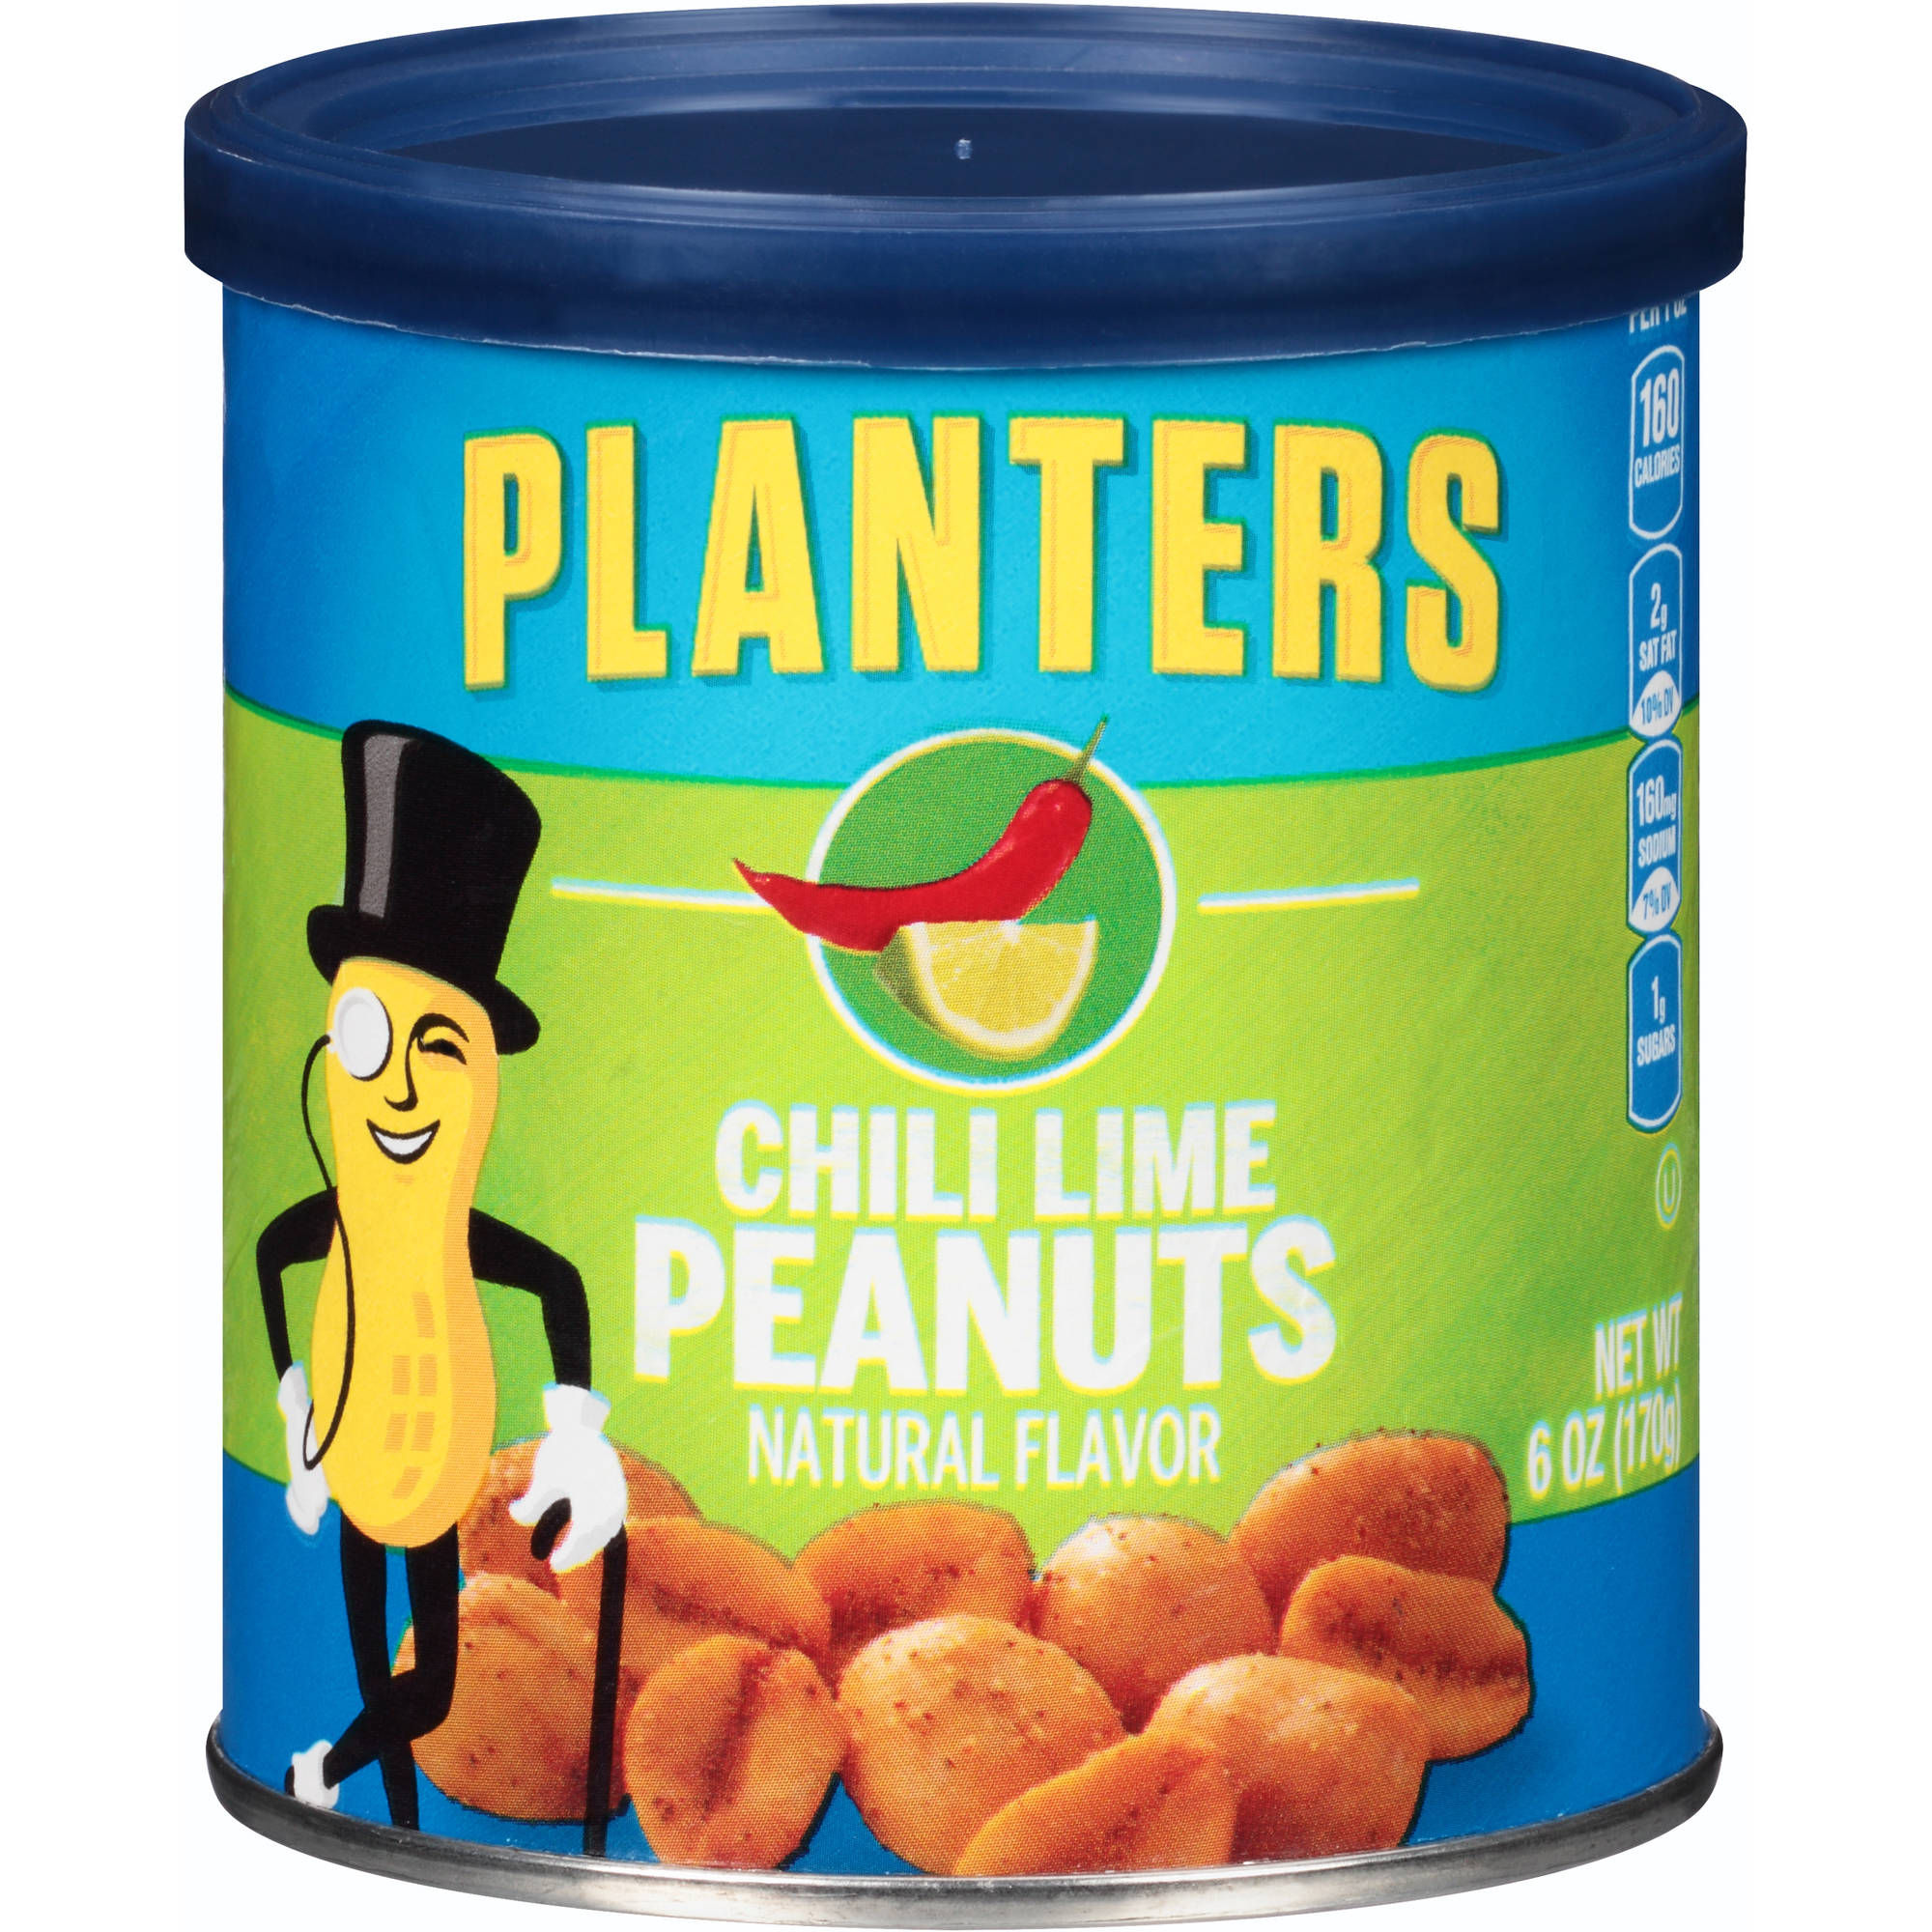 Planters Chili Lime Peanuts, 6 oz